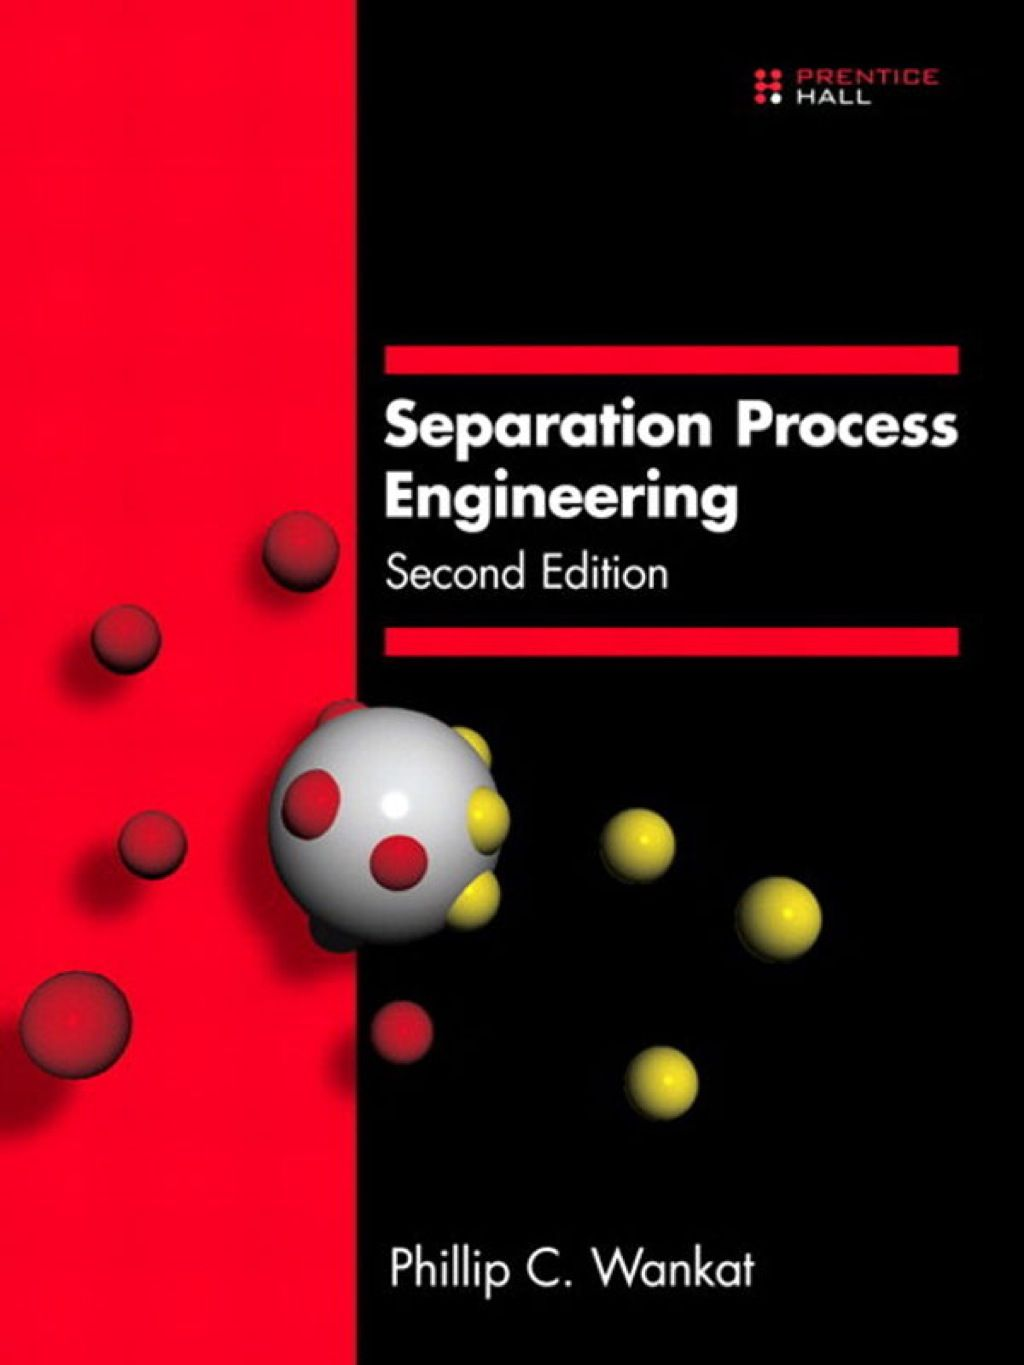 Separation Process Engineering Ebook Process Engineering